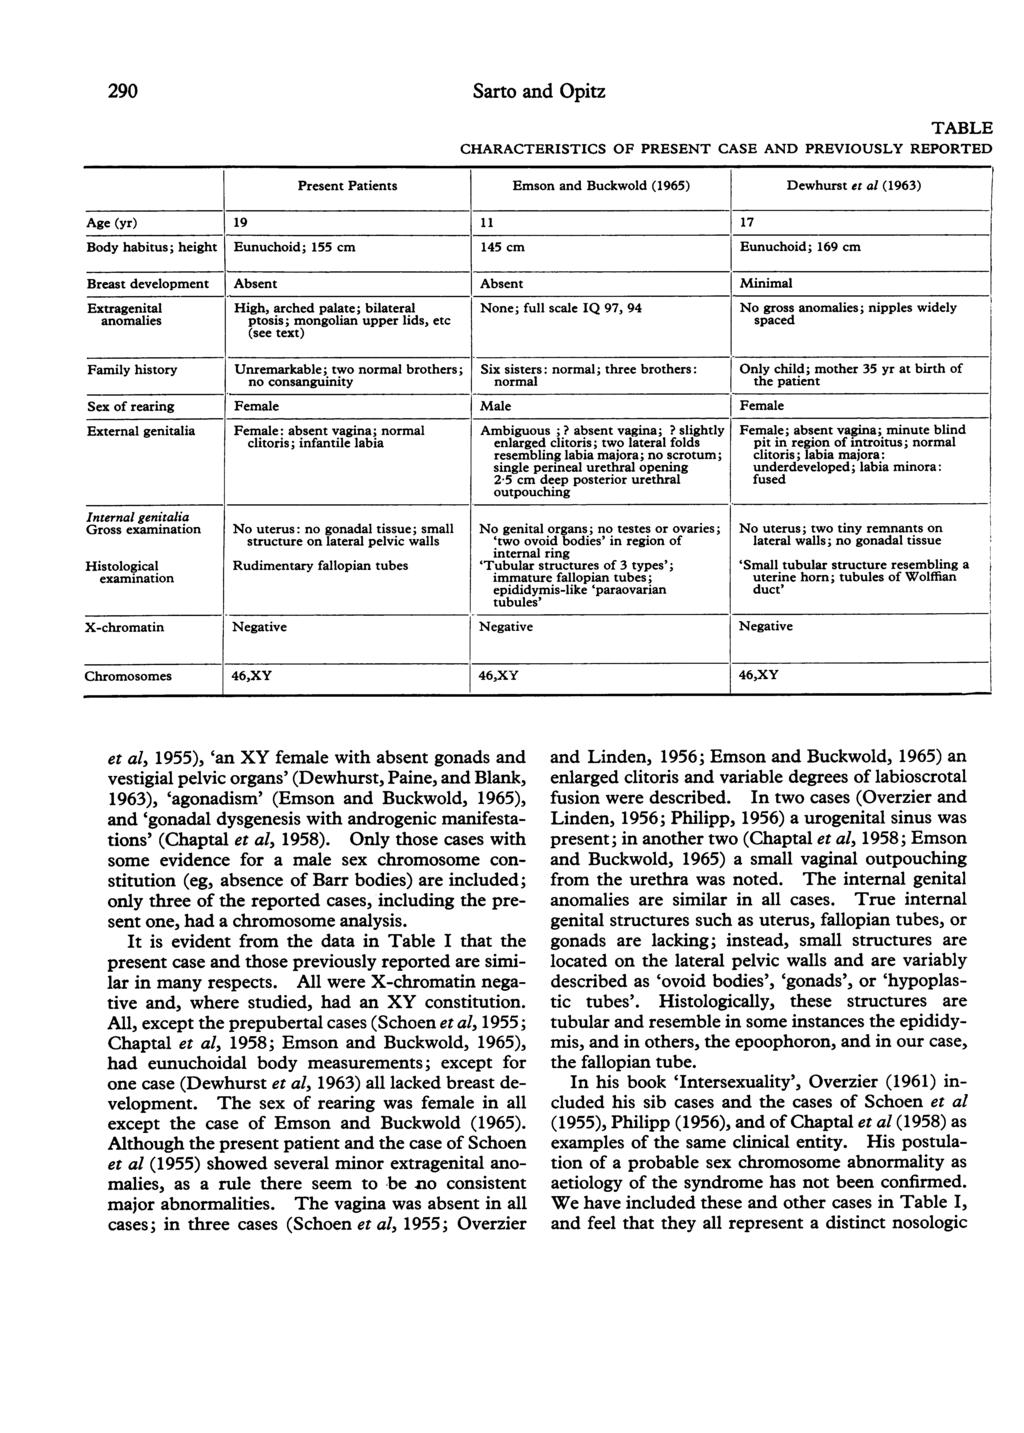 290 TABLE CHARACTERISTICS OF PRESENT CASE AND PREVIOUSLY REPORTED Present Patients Emson and Buckwold (1965) Dewhurst et al (1963) Age (yr) 19 11 17 Body habitus; height Eunuchoid; 155 cm 145 cm